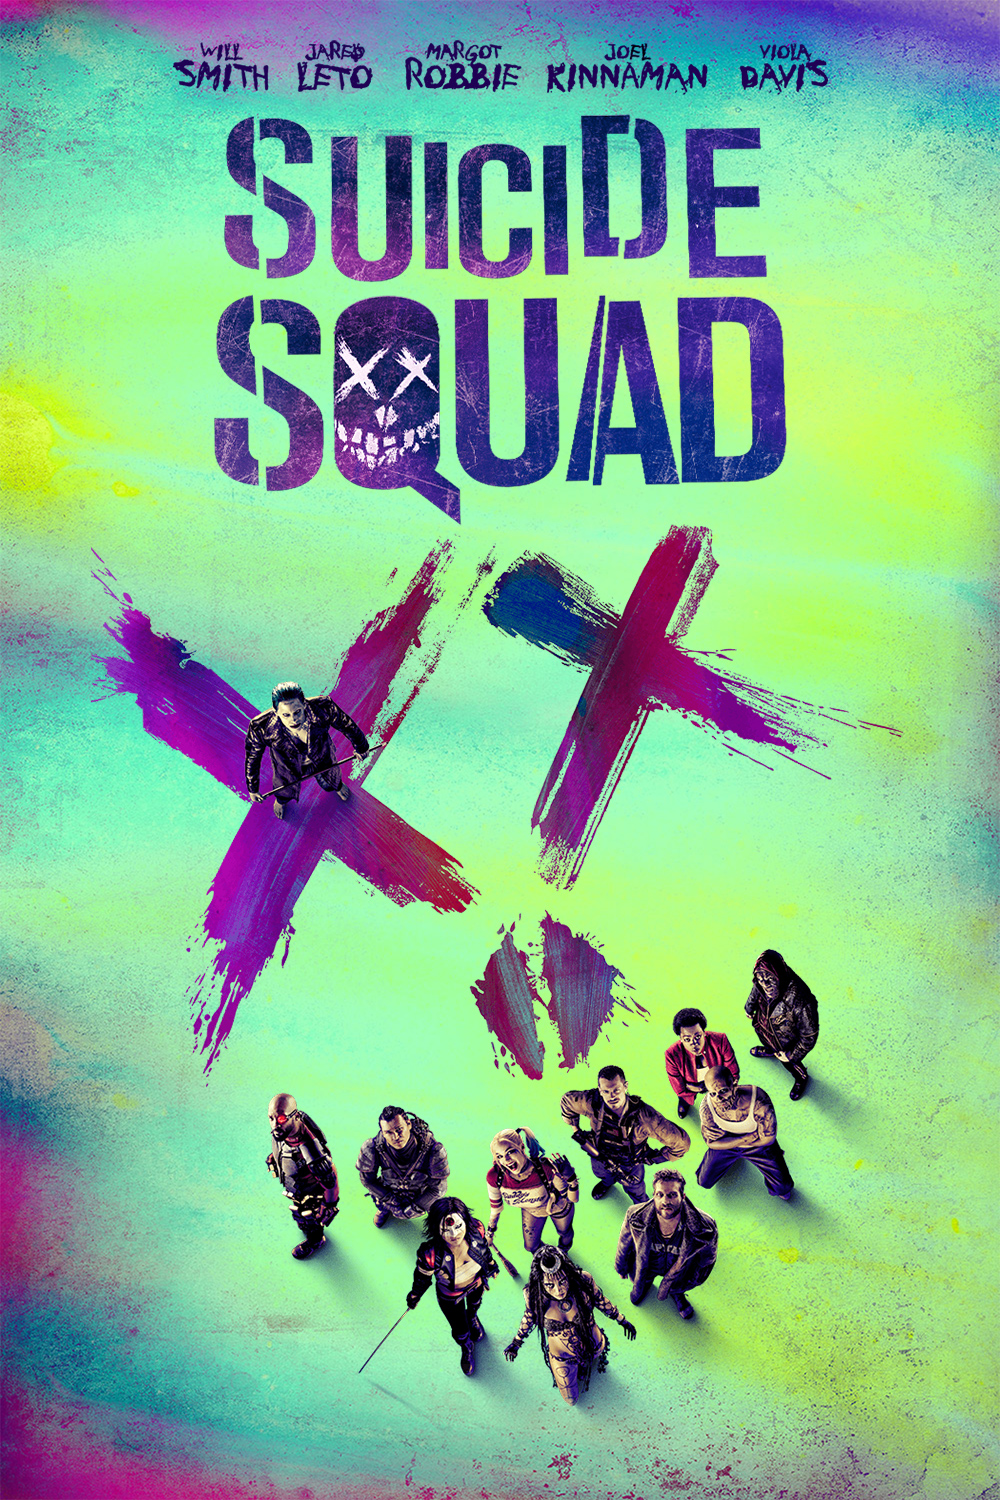 Suicide-Squad-Movie-Posters-movie-trailers-40157221-1000-1500.jpg